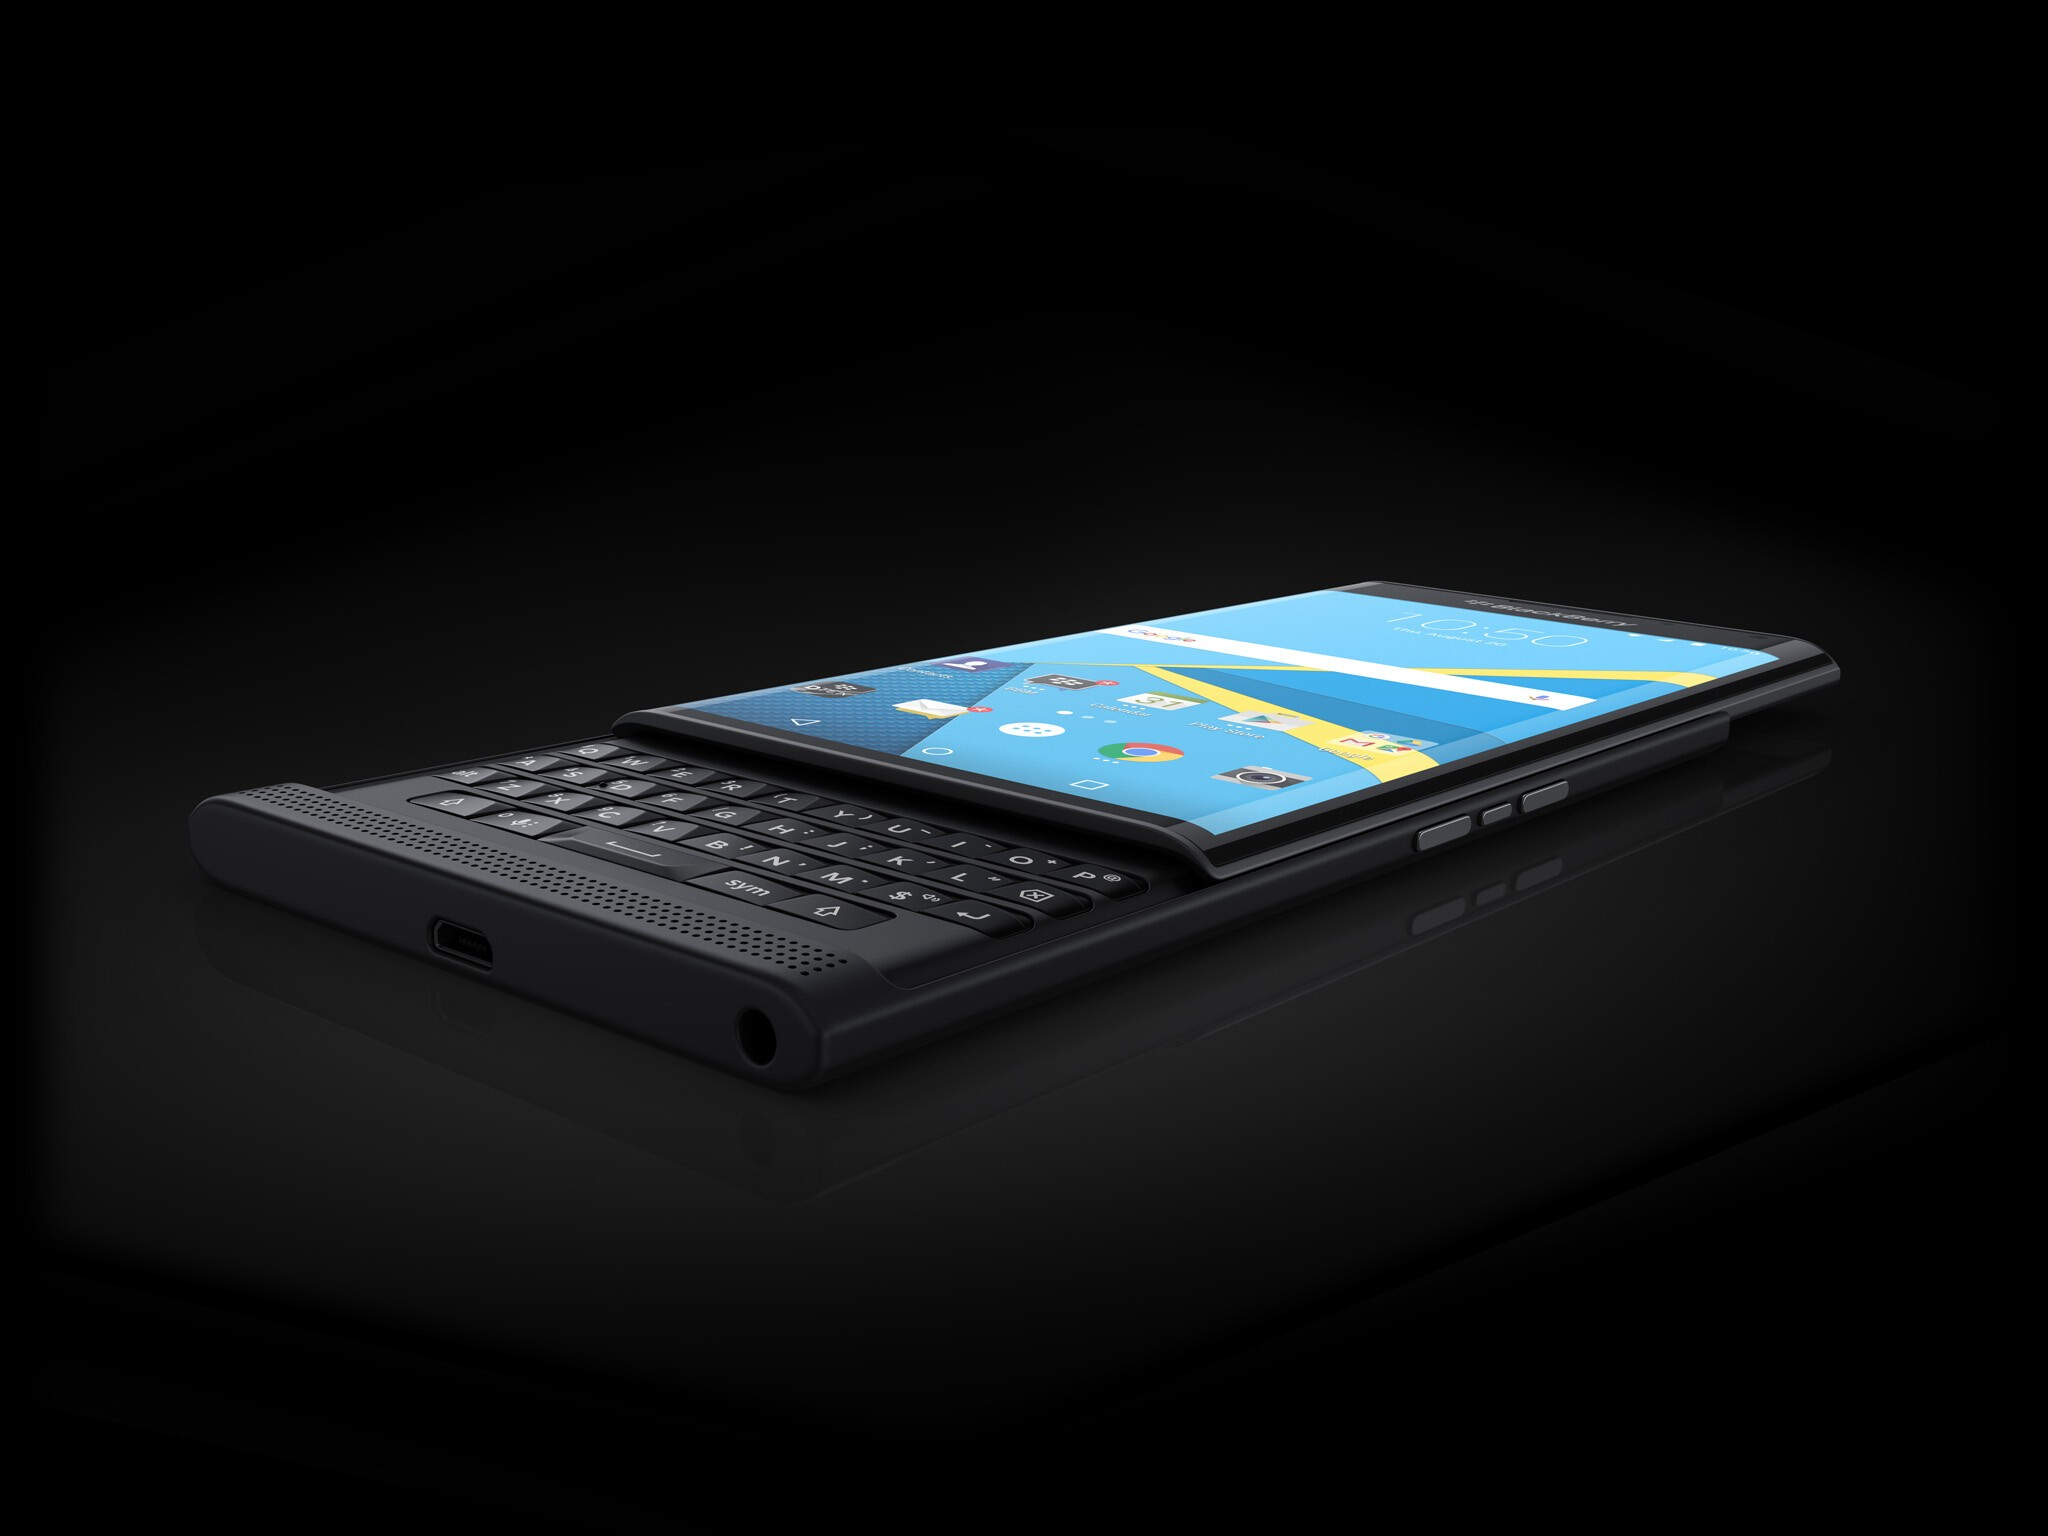 Priv by BlackBerry?